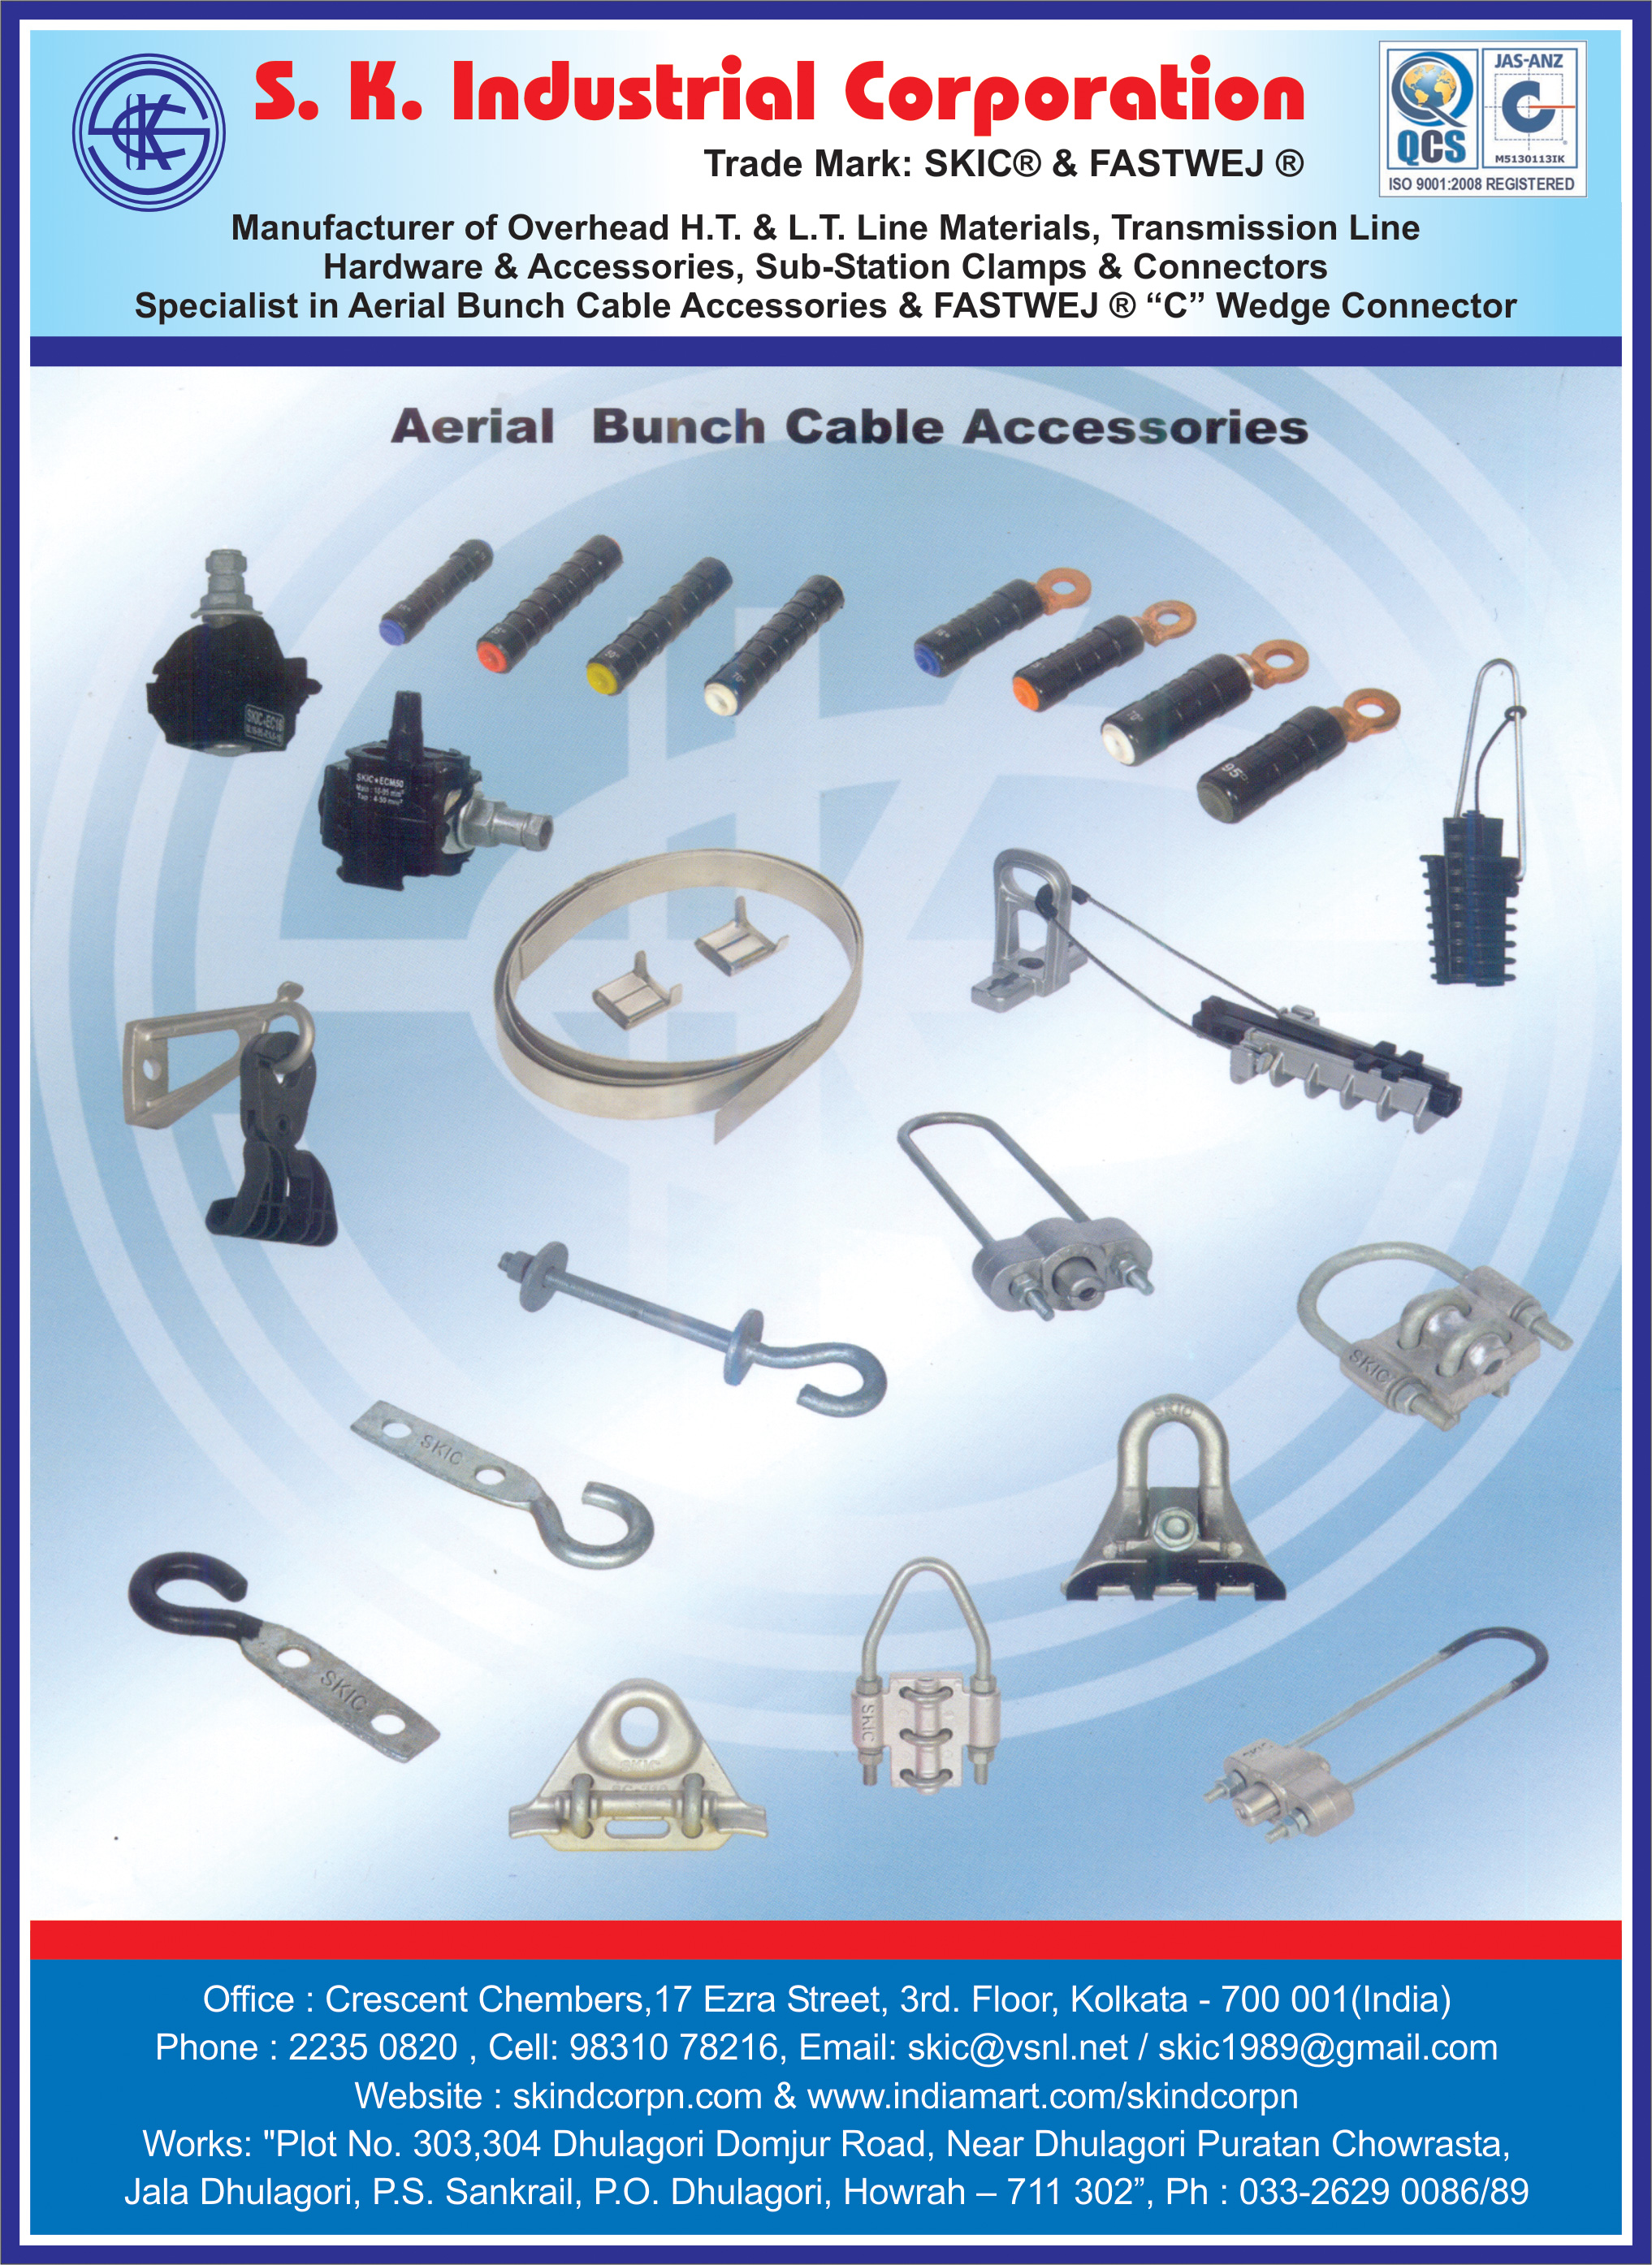 Electrical Overhead Lt/Ht Equipment and Spares, S K INDUSTRIAL CORPORATION, Kolkata,  Yellow Pages, Kolkata, West Bengal